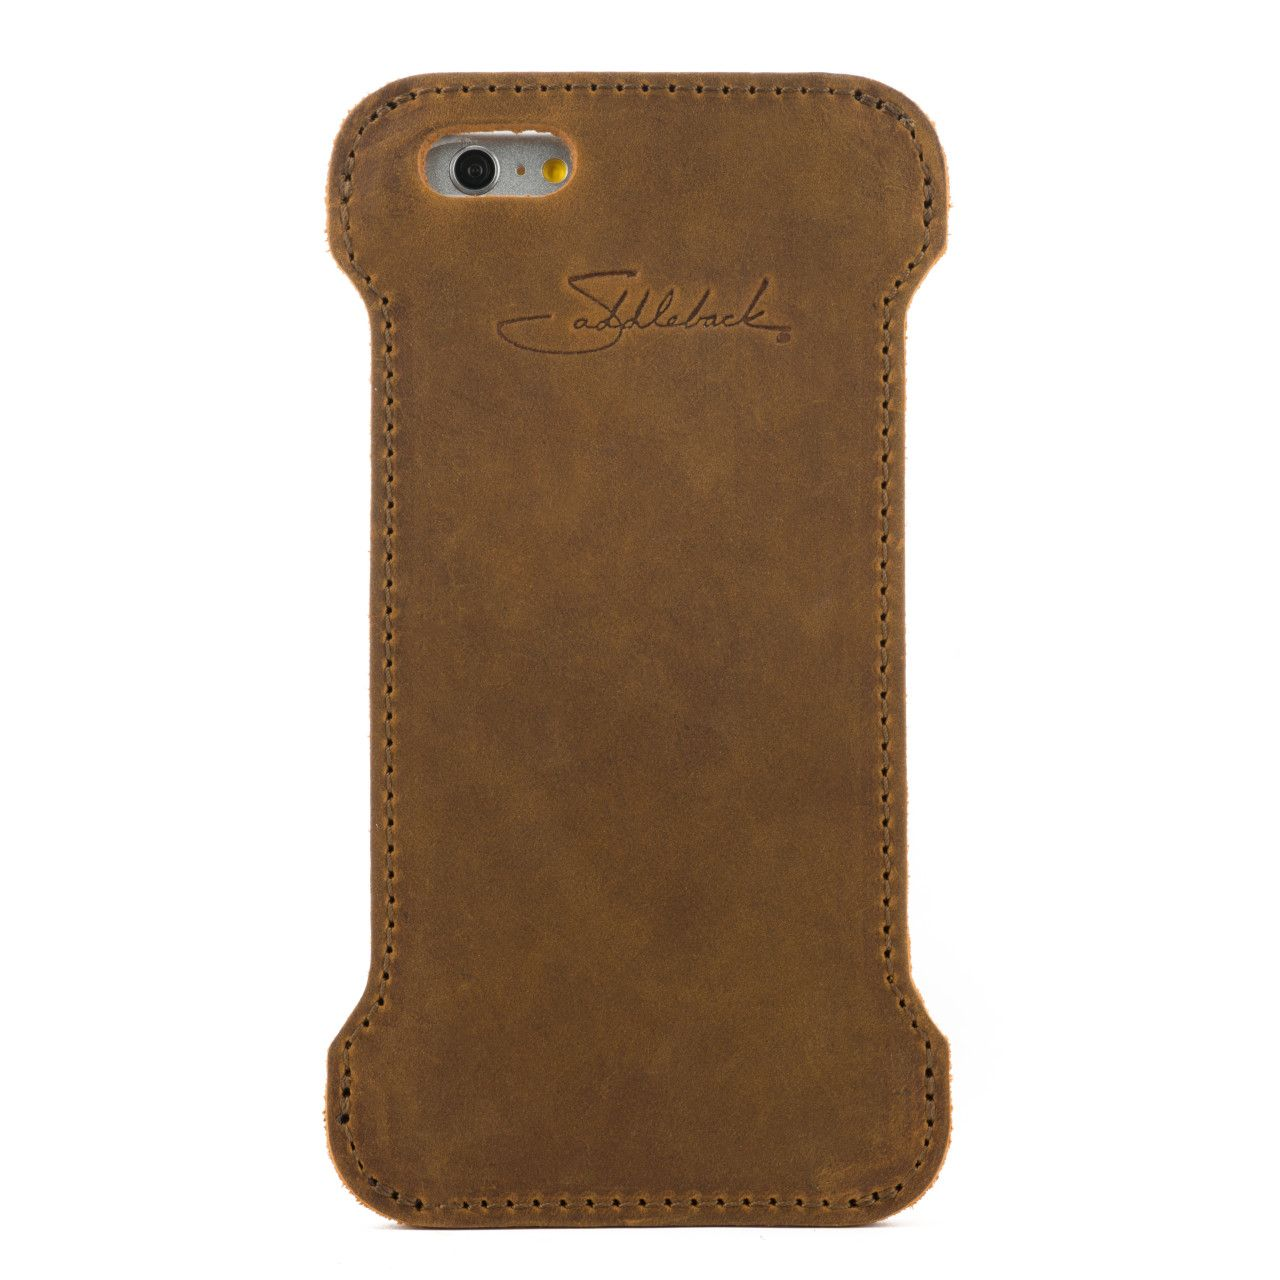 iphone 6 leather case large in tobacco leather